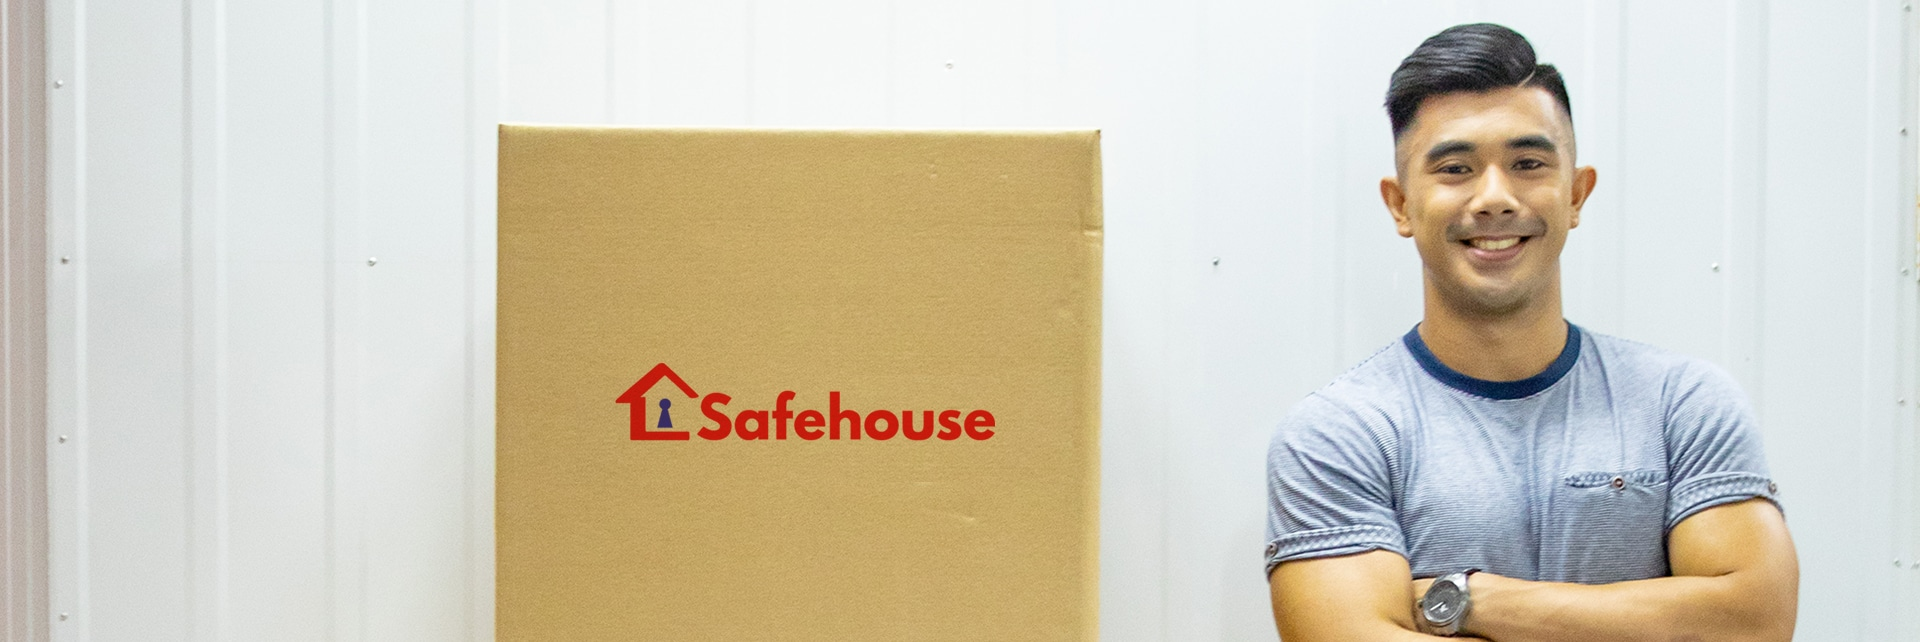 Services | Safehouse Storage